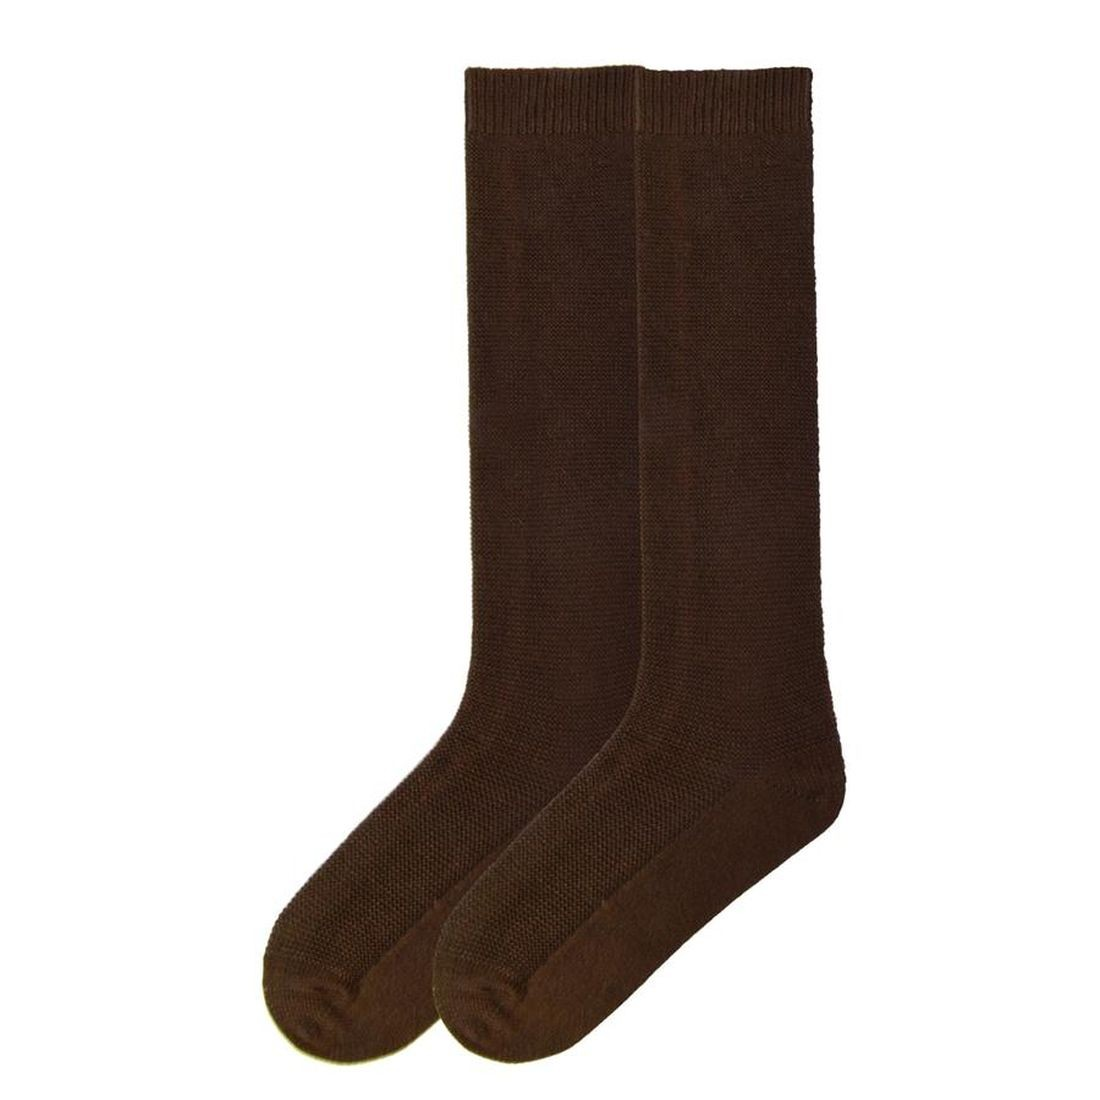 Brown Ups Socks, Wholesale Various High Quality Brown Ups Socks Products from Global Brown Ups Socks Suppliers and Brown Ups Socks Factory,Importer,Exporter at ditilink.gq